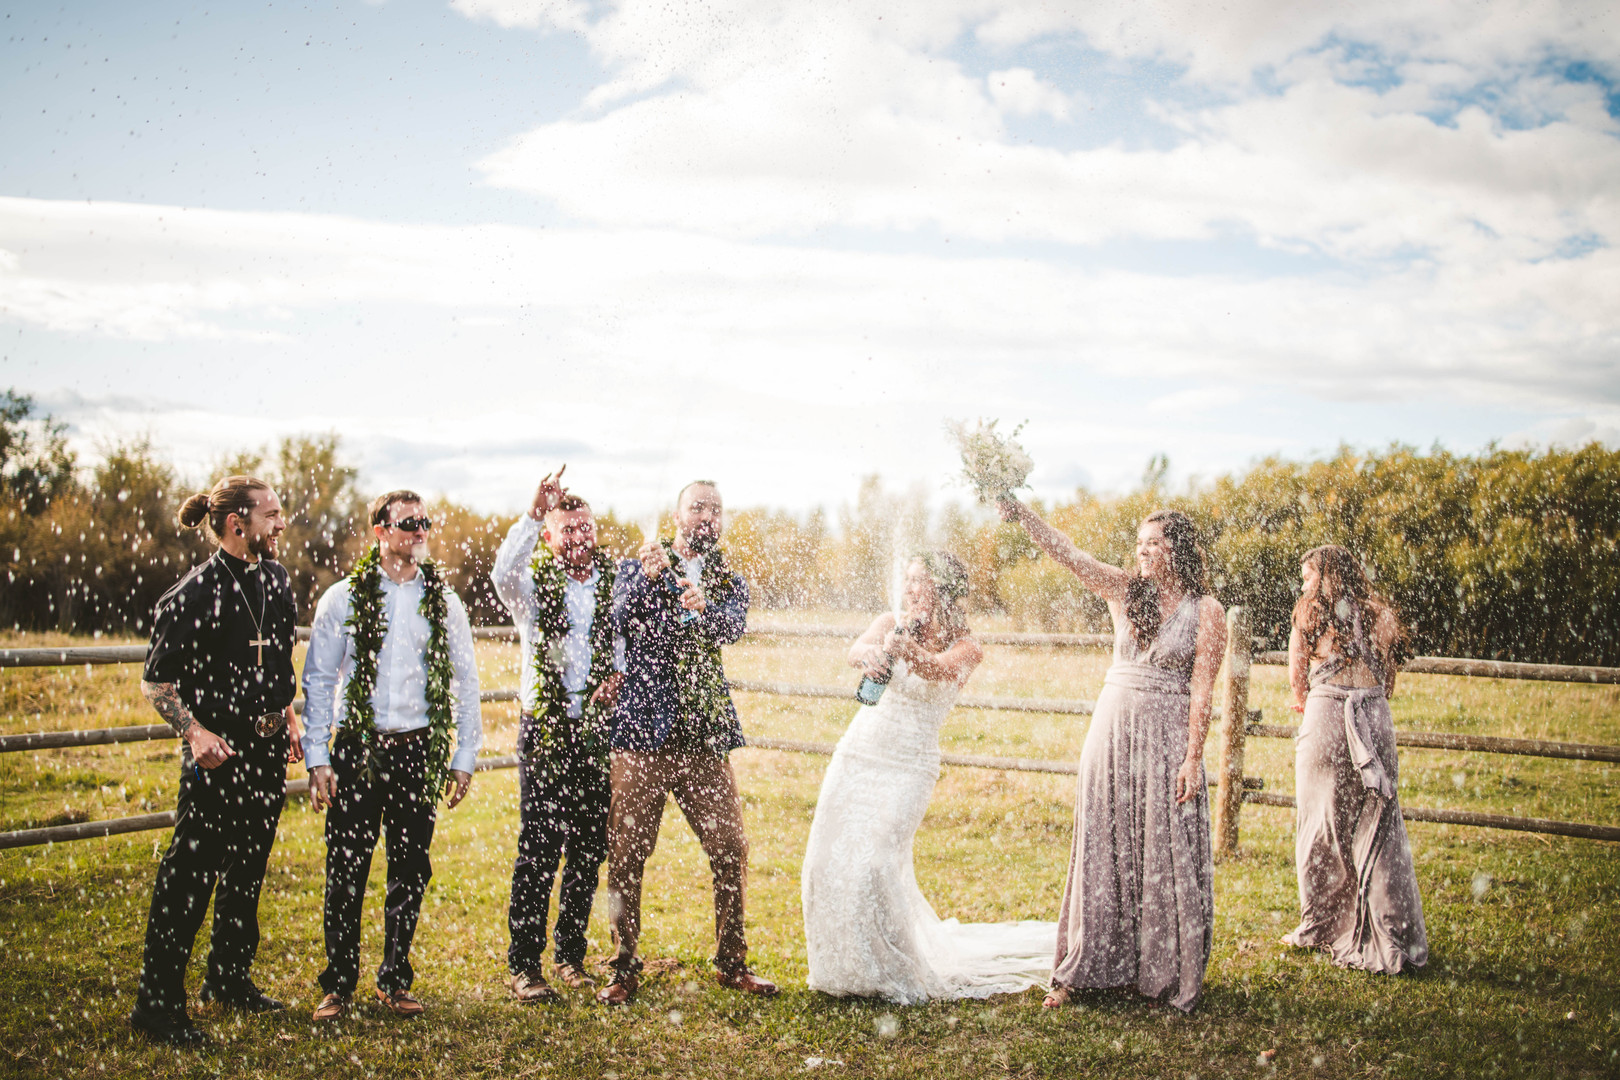 Danny and Kaytlin Deveney celebrate their wedding in Whitehall, Montana